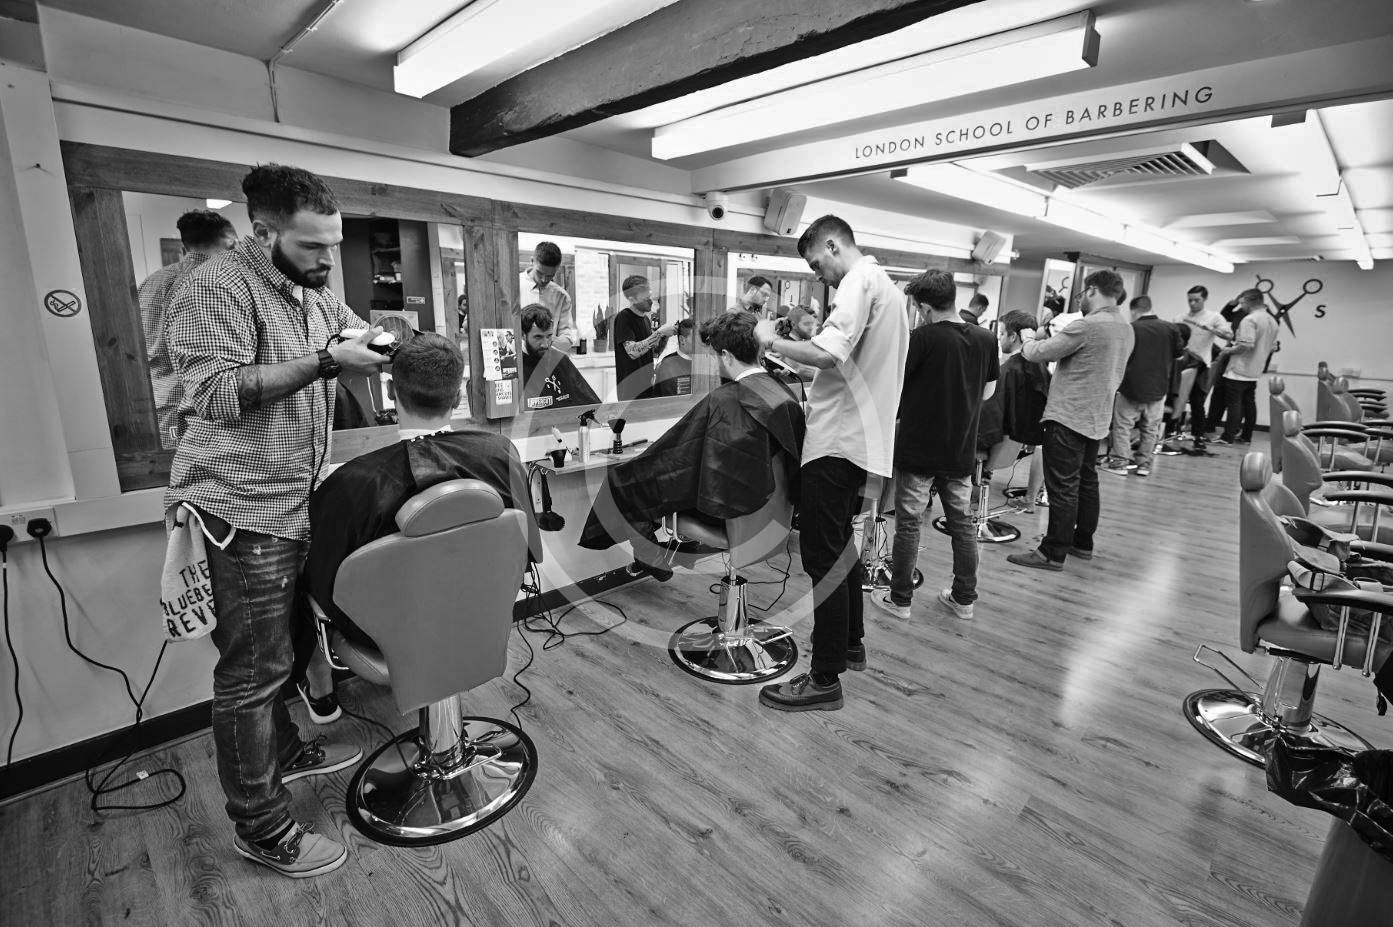 Interesting Article on History of Barbering